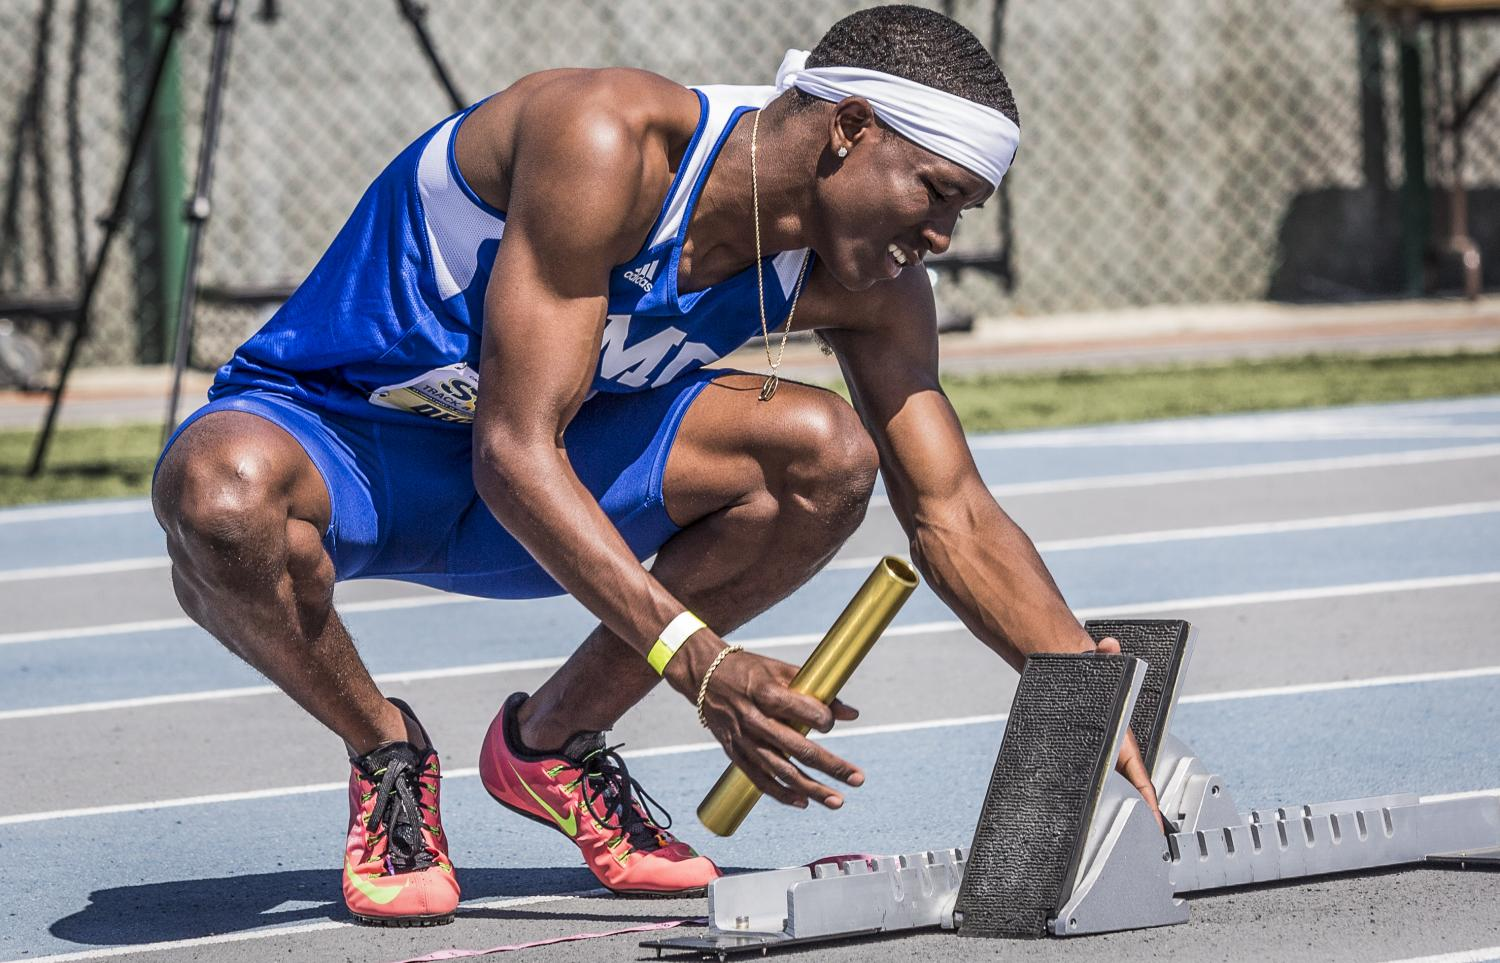 Santa Monica College Corsair sophomore athlete Devyn Deckard checks his mark before the Men's 4 x 400m Relay during the So Cal track and field finals in the Cerritos College field in Norwalk, Calif., on Saturday, May 13, 2017. Deckard would go on to start the relay for the Corsairs Men's 400m Relay team which would end up coming in 4th place during Saturdays So Cal Track and Field championship with a time of 3:17.91. (Matthew Martin)